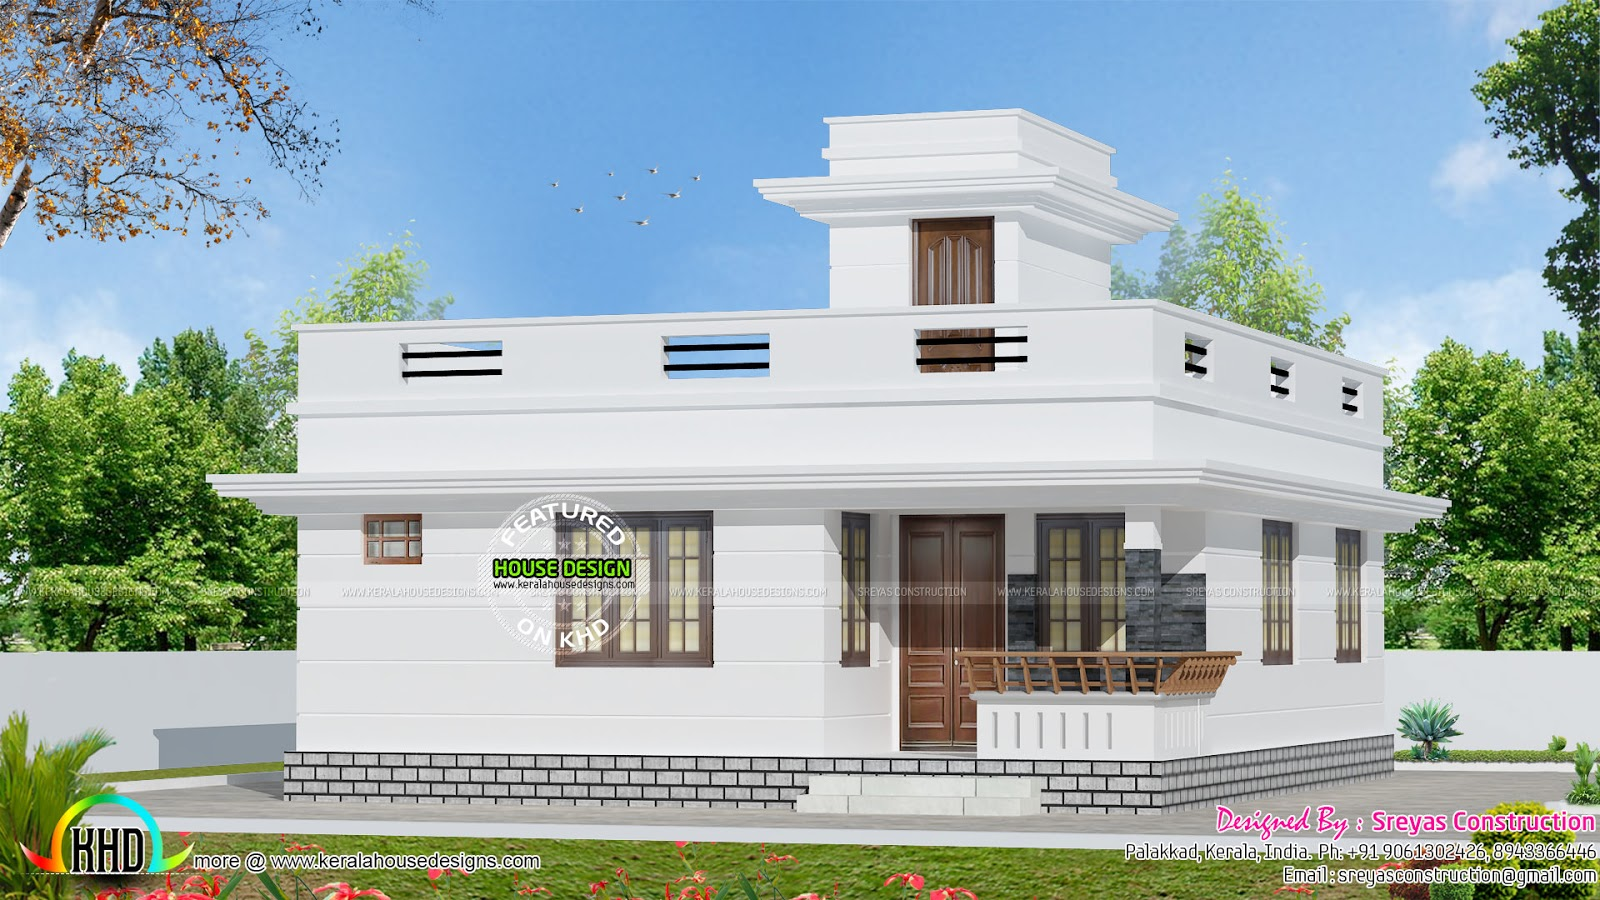 882 Sq Ft Small House Architecture Kerala Home Design And Floor Plans